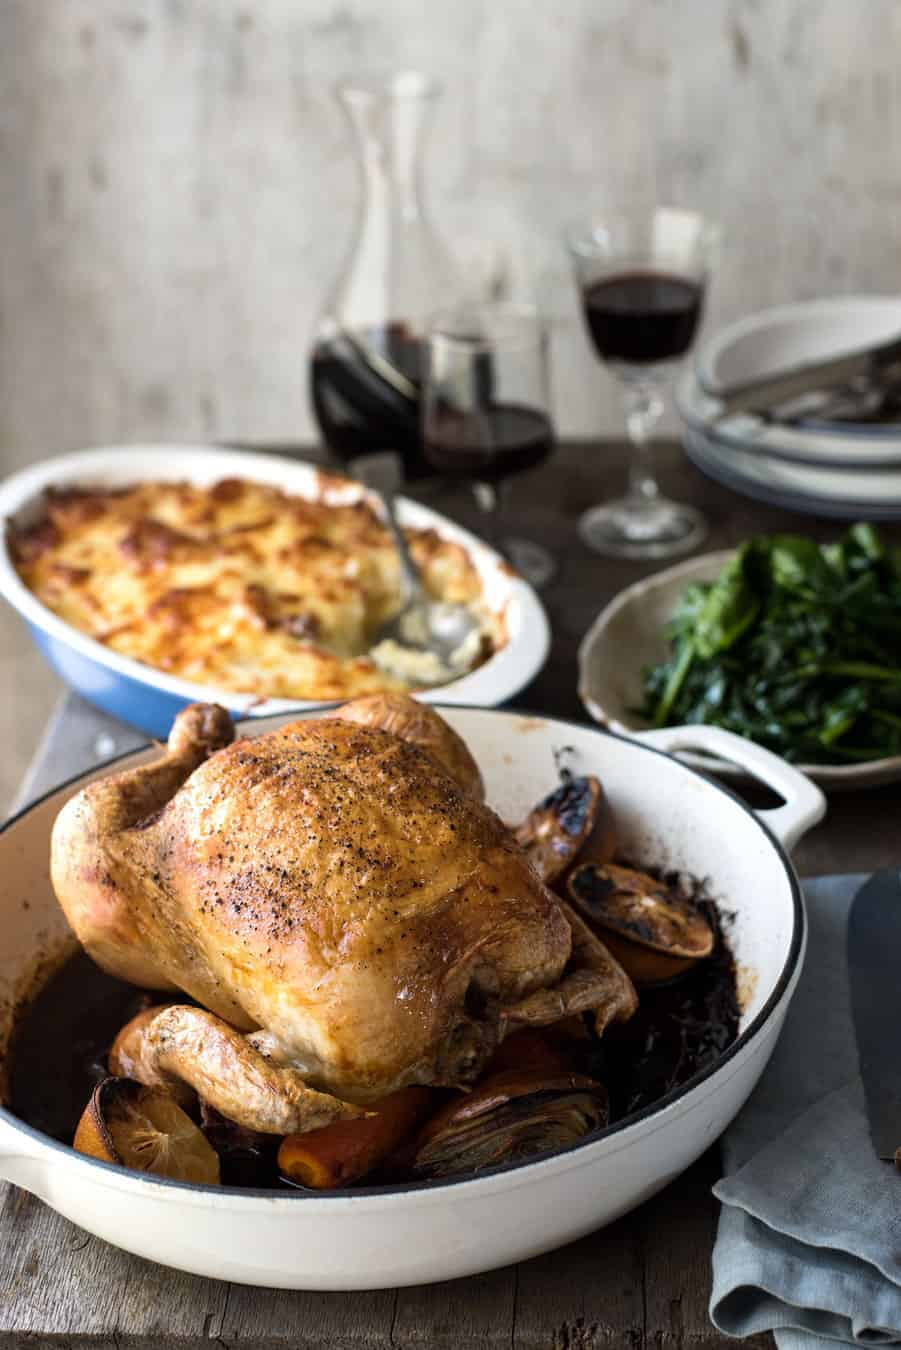 Classic Roast Chicken | I've made this recipe so many times, it's perfect!